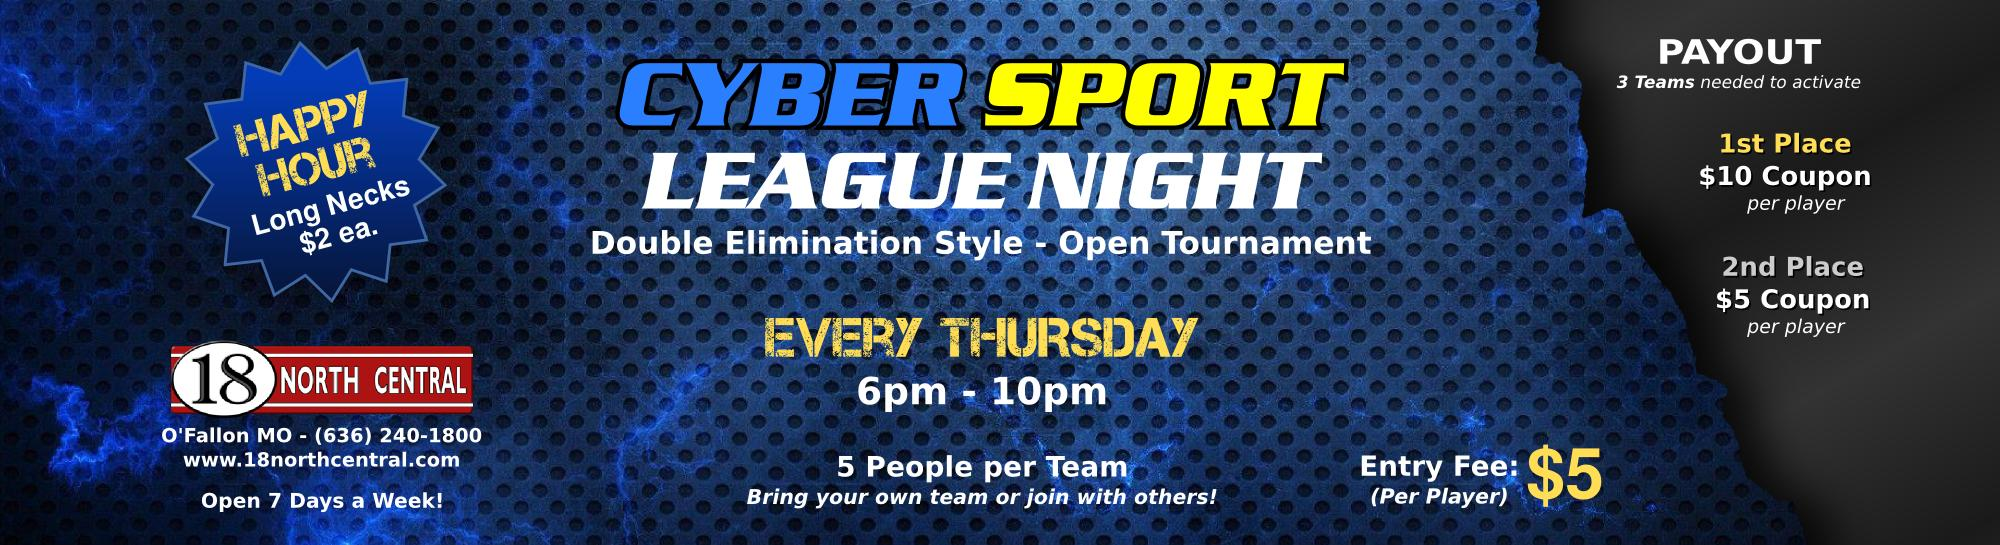 cybersport_league_2000x545